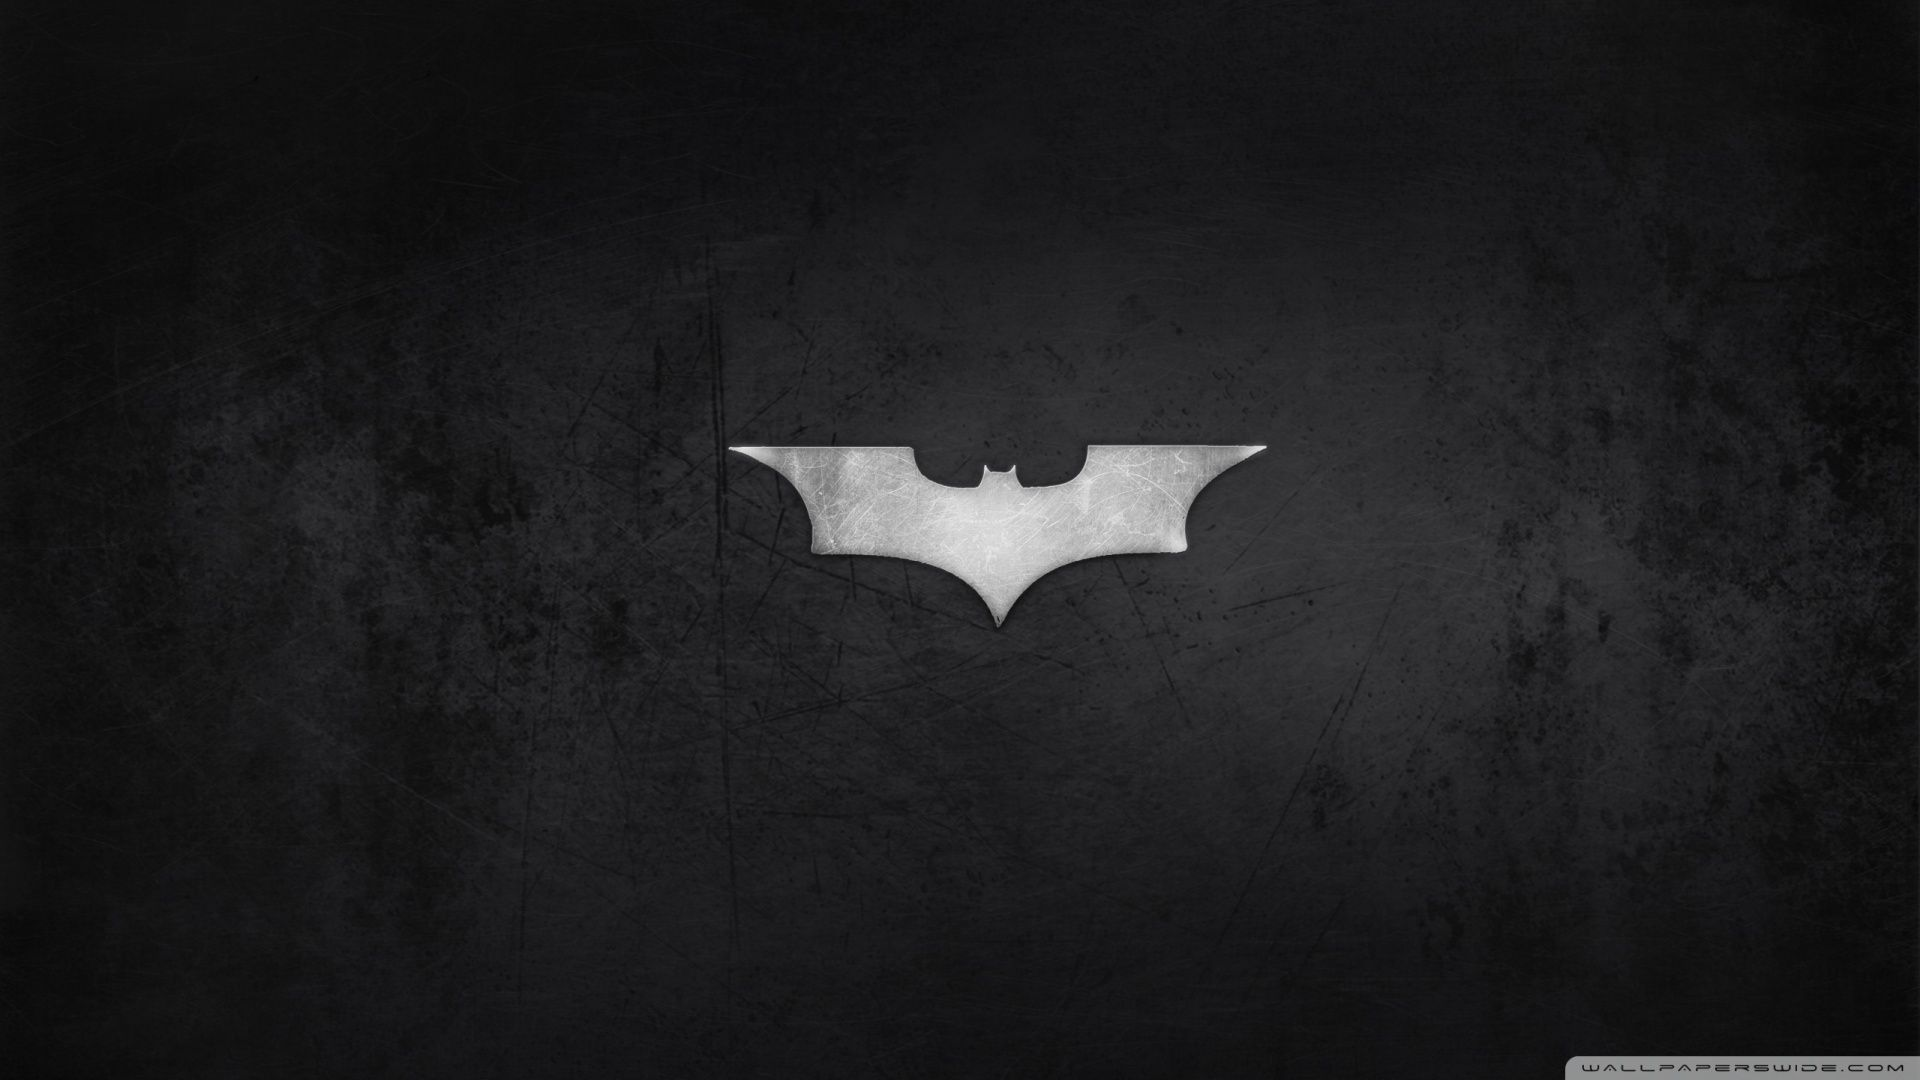 Pin By Chandramani Sahoo On Desktop Hd Wallpapers Batman Wallpaper Batman Batman Logo